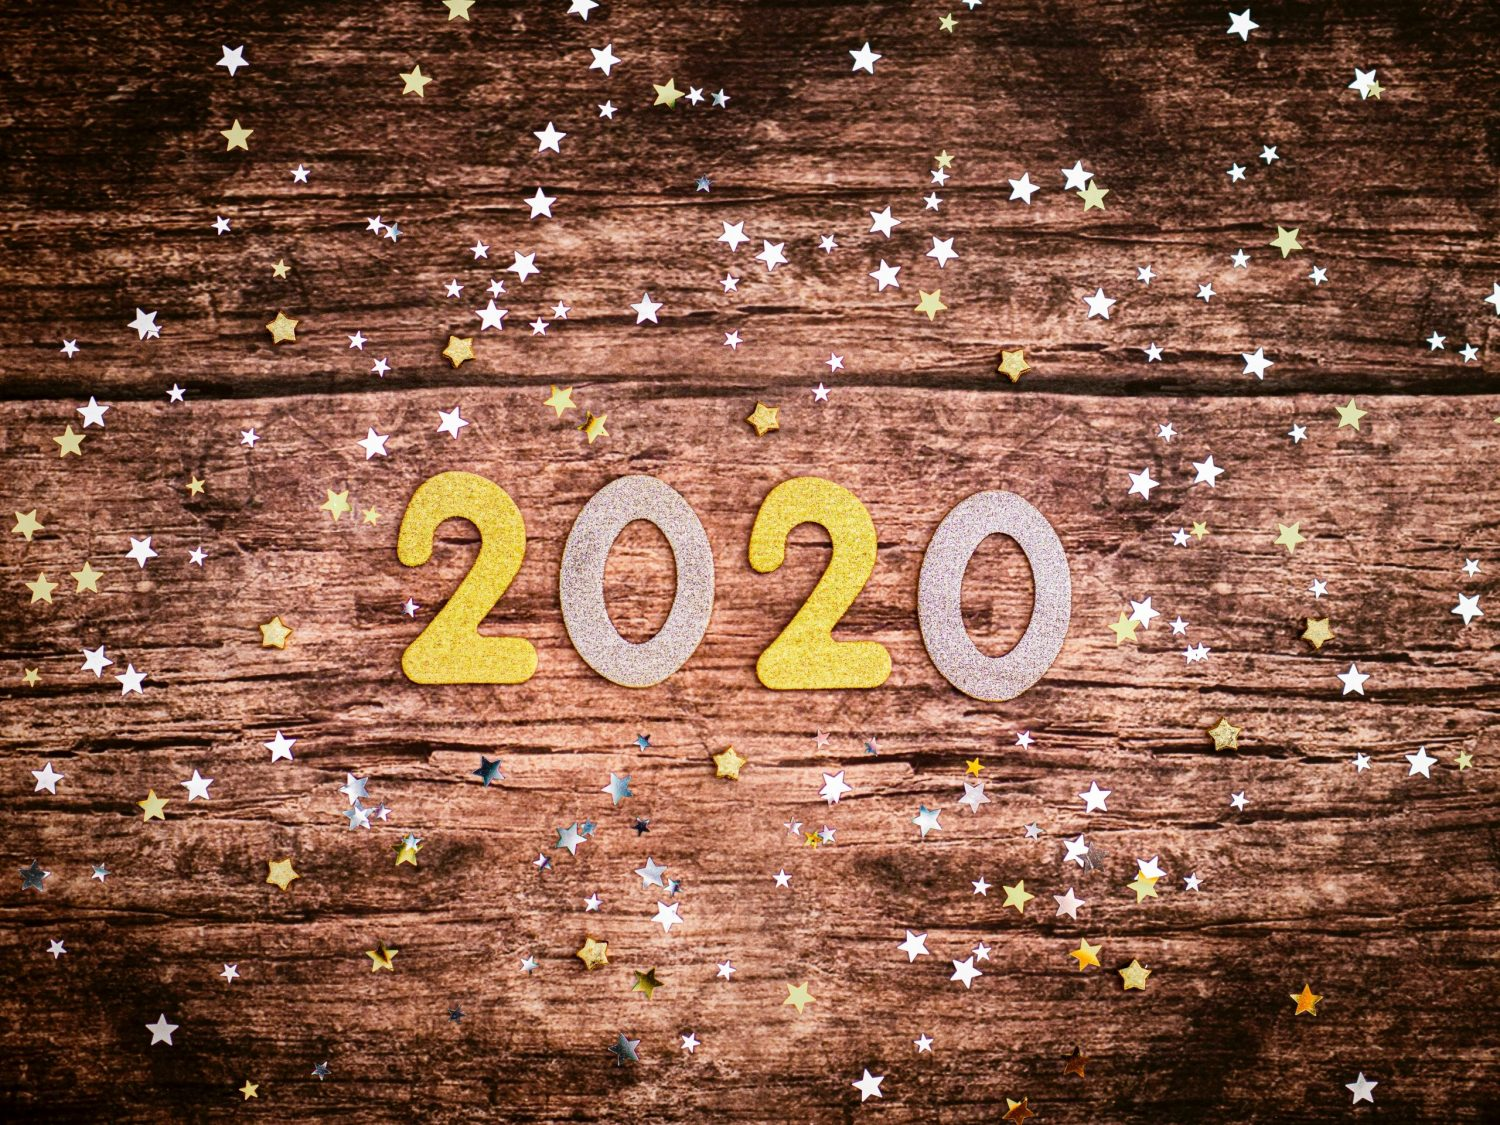 2020 with sparkles surrounding